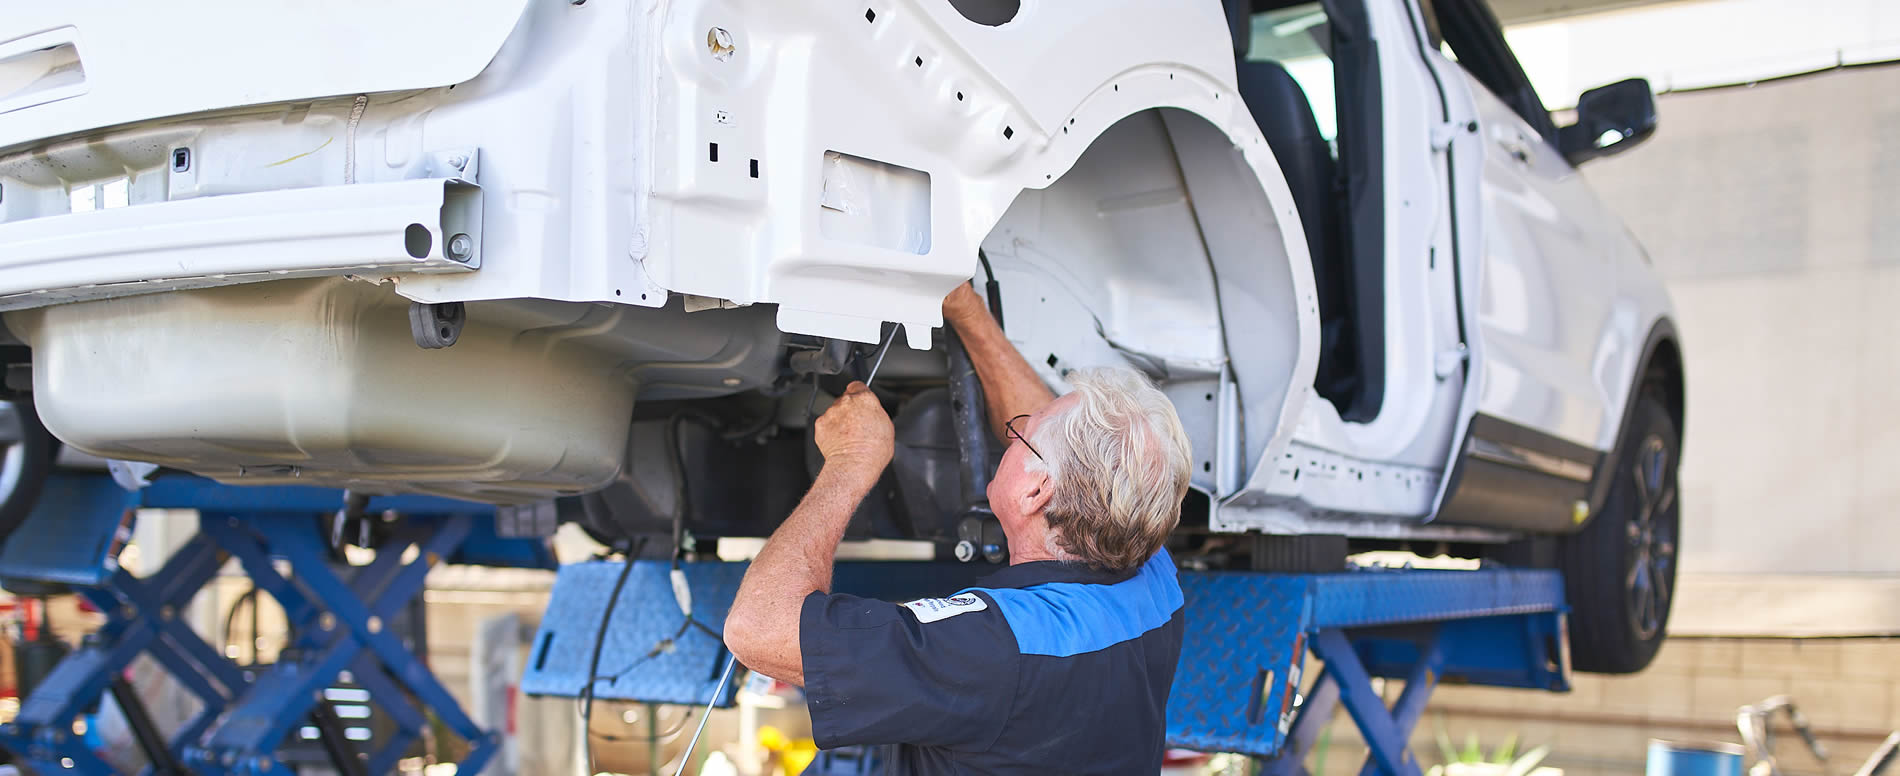 huntington beach auto body repair mechanic